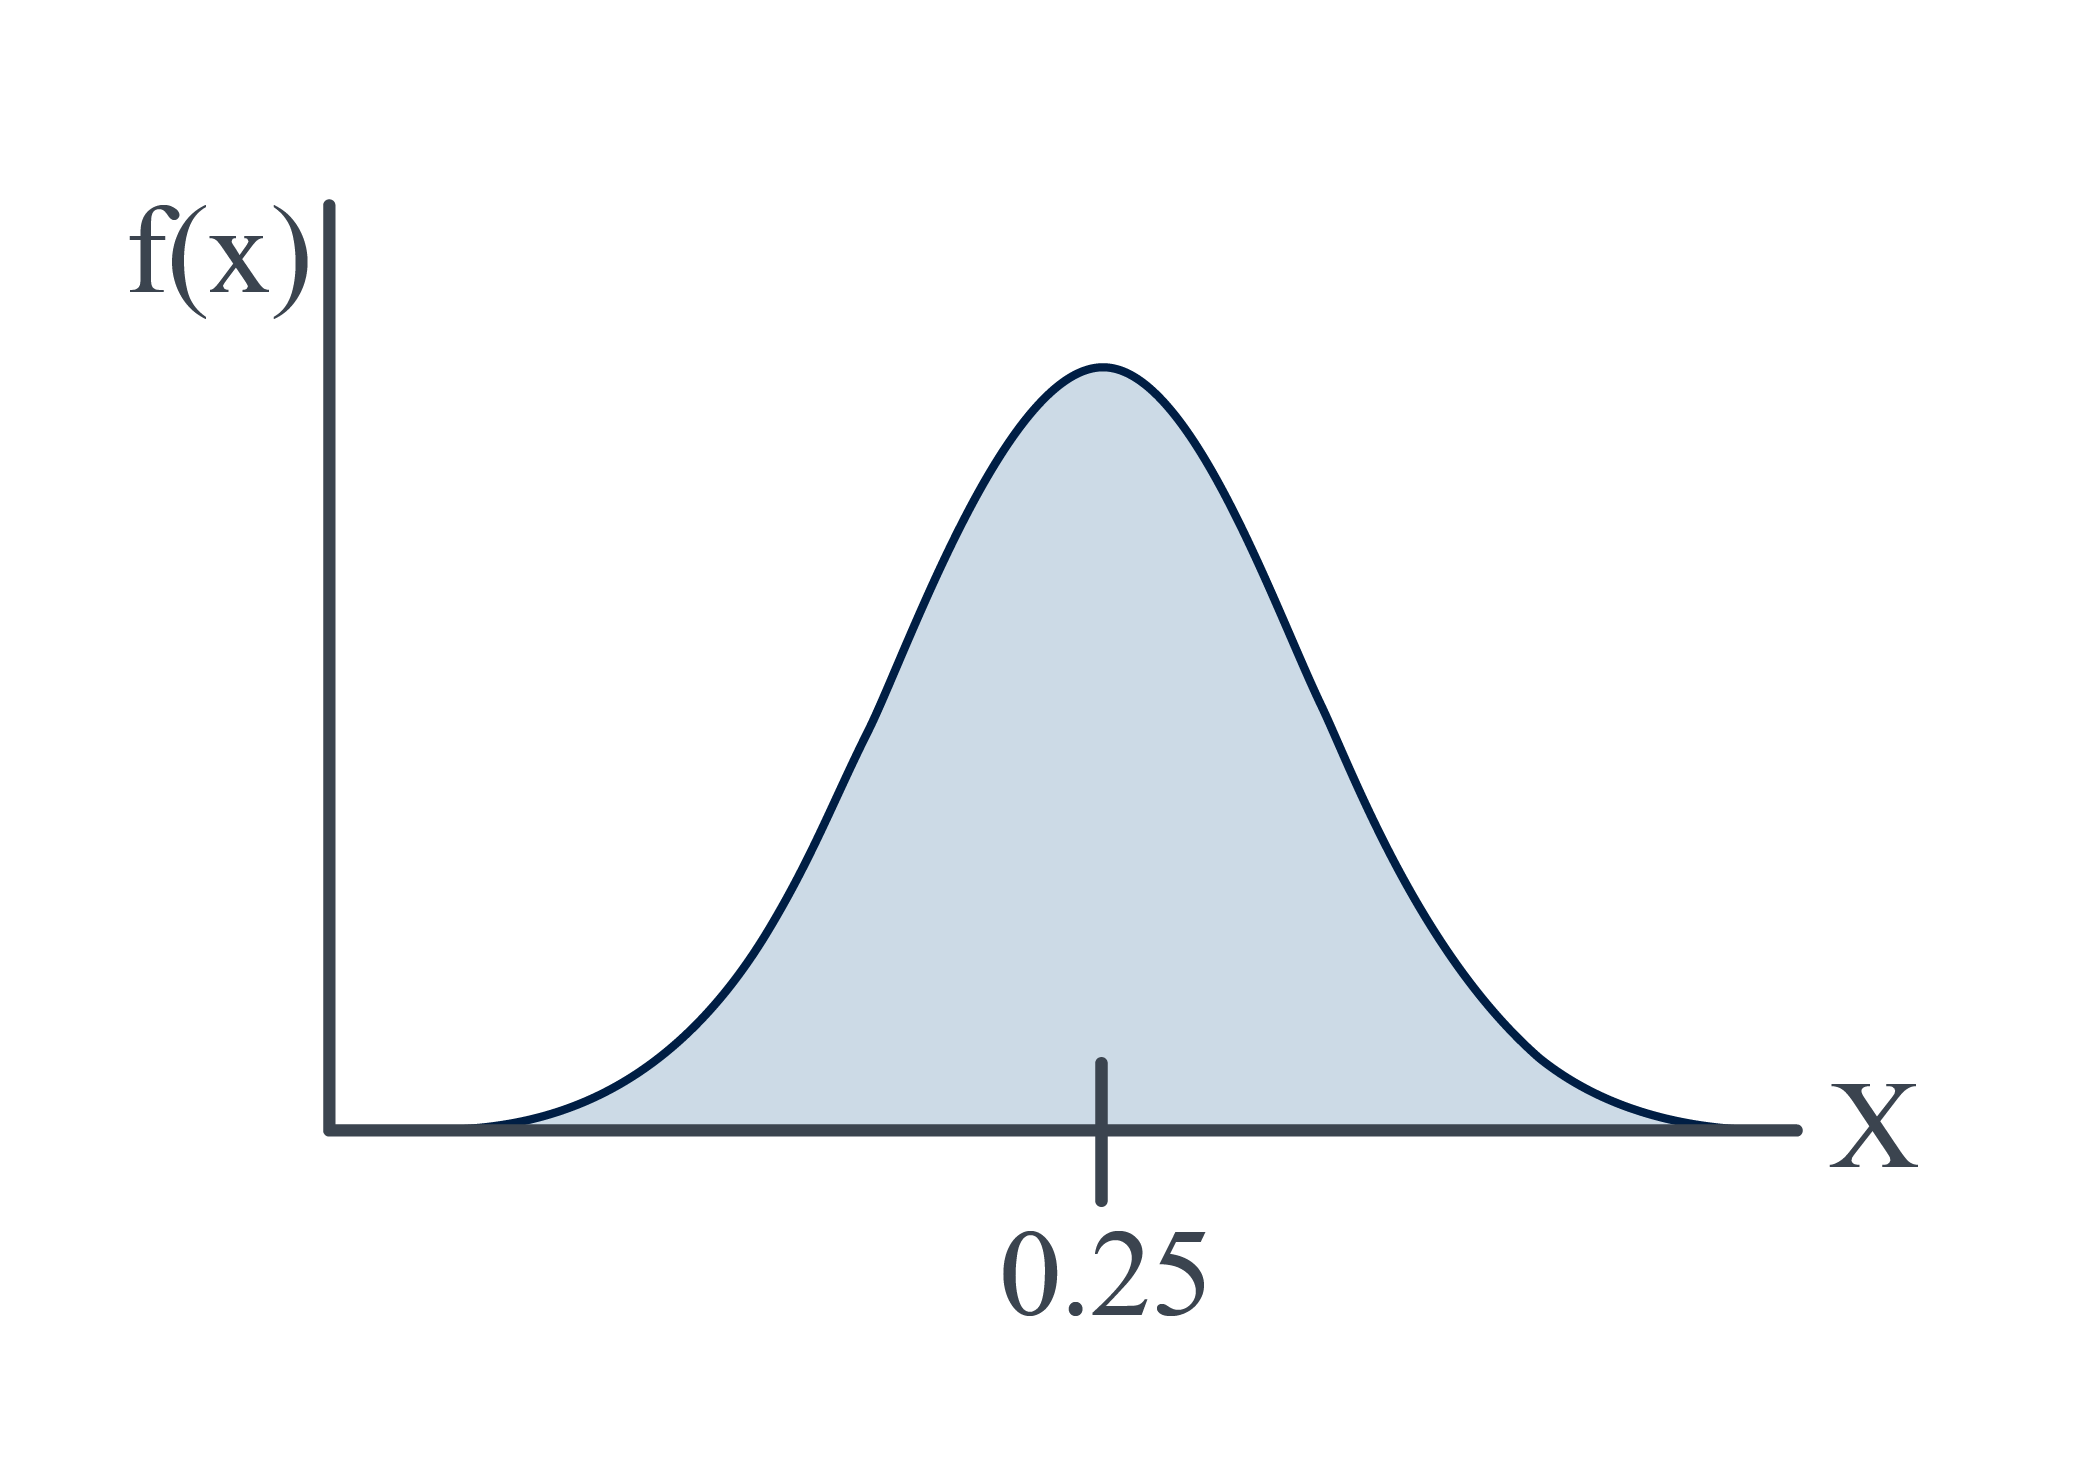 Density curve for hamburger weights